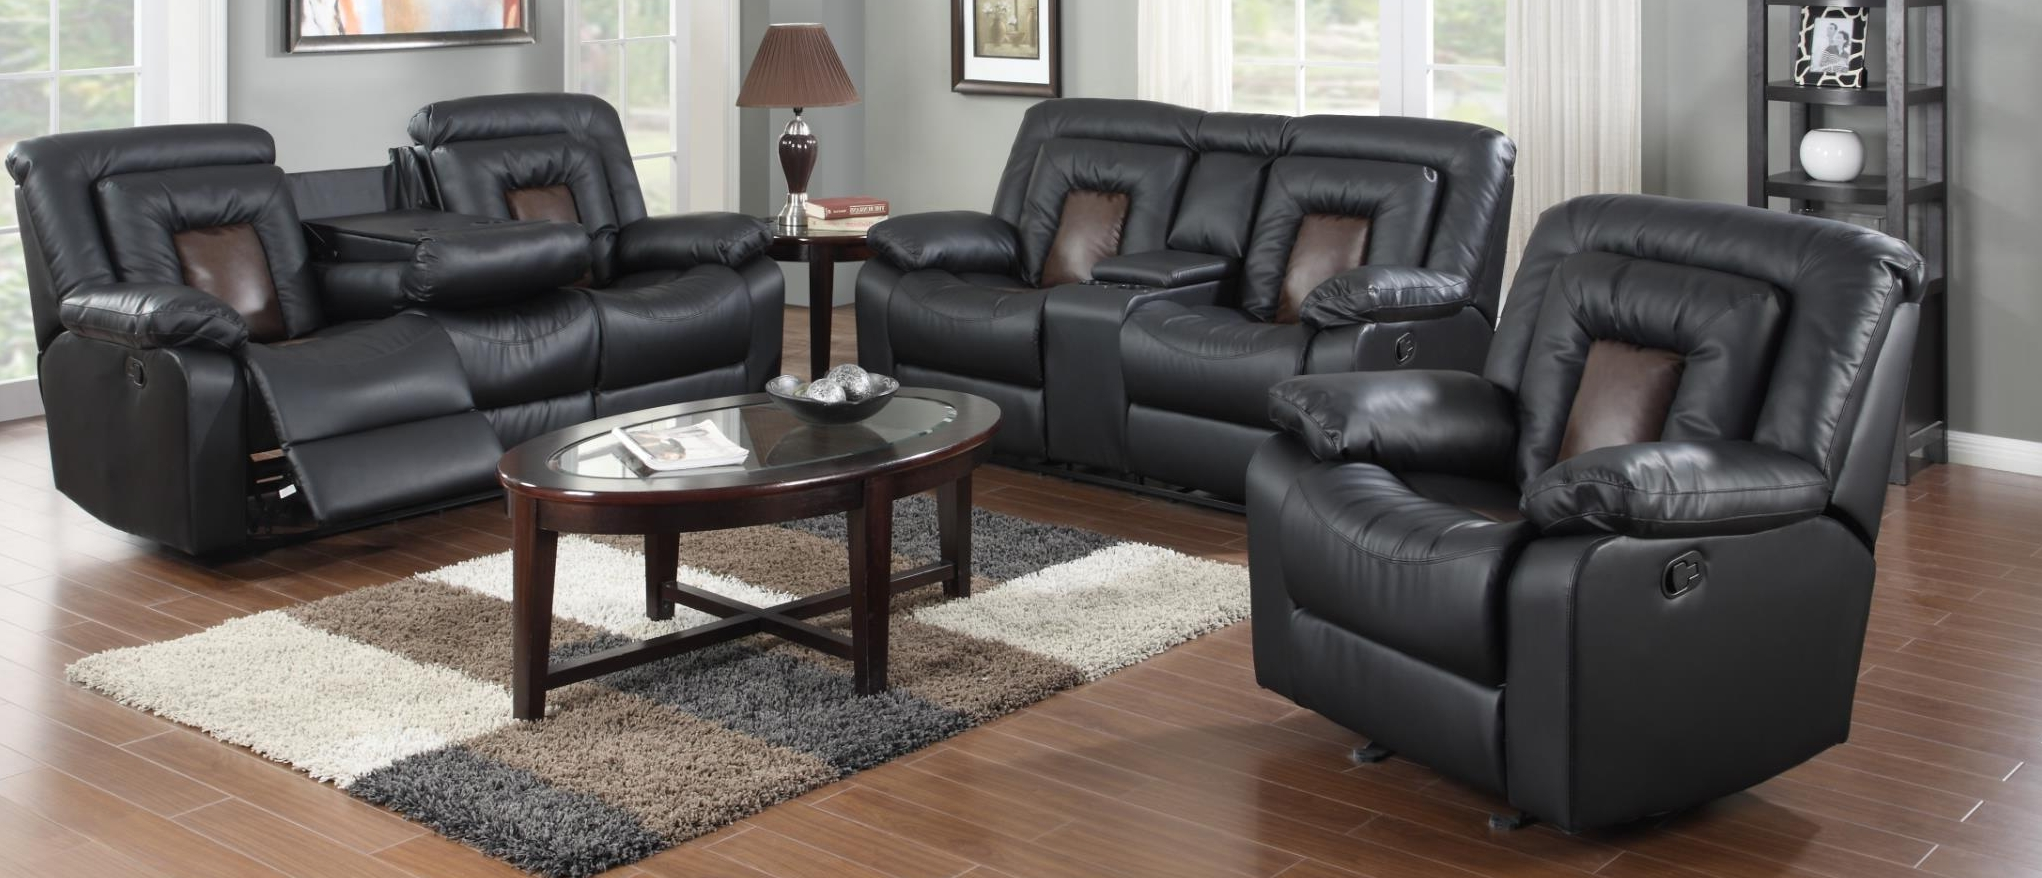 Virginia Sectional Sofas With Regard To Recent Sofa & Sectionals – Pluto Distribution (View 18 of 20)